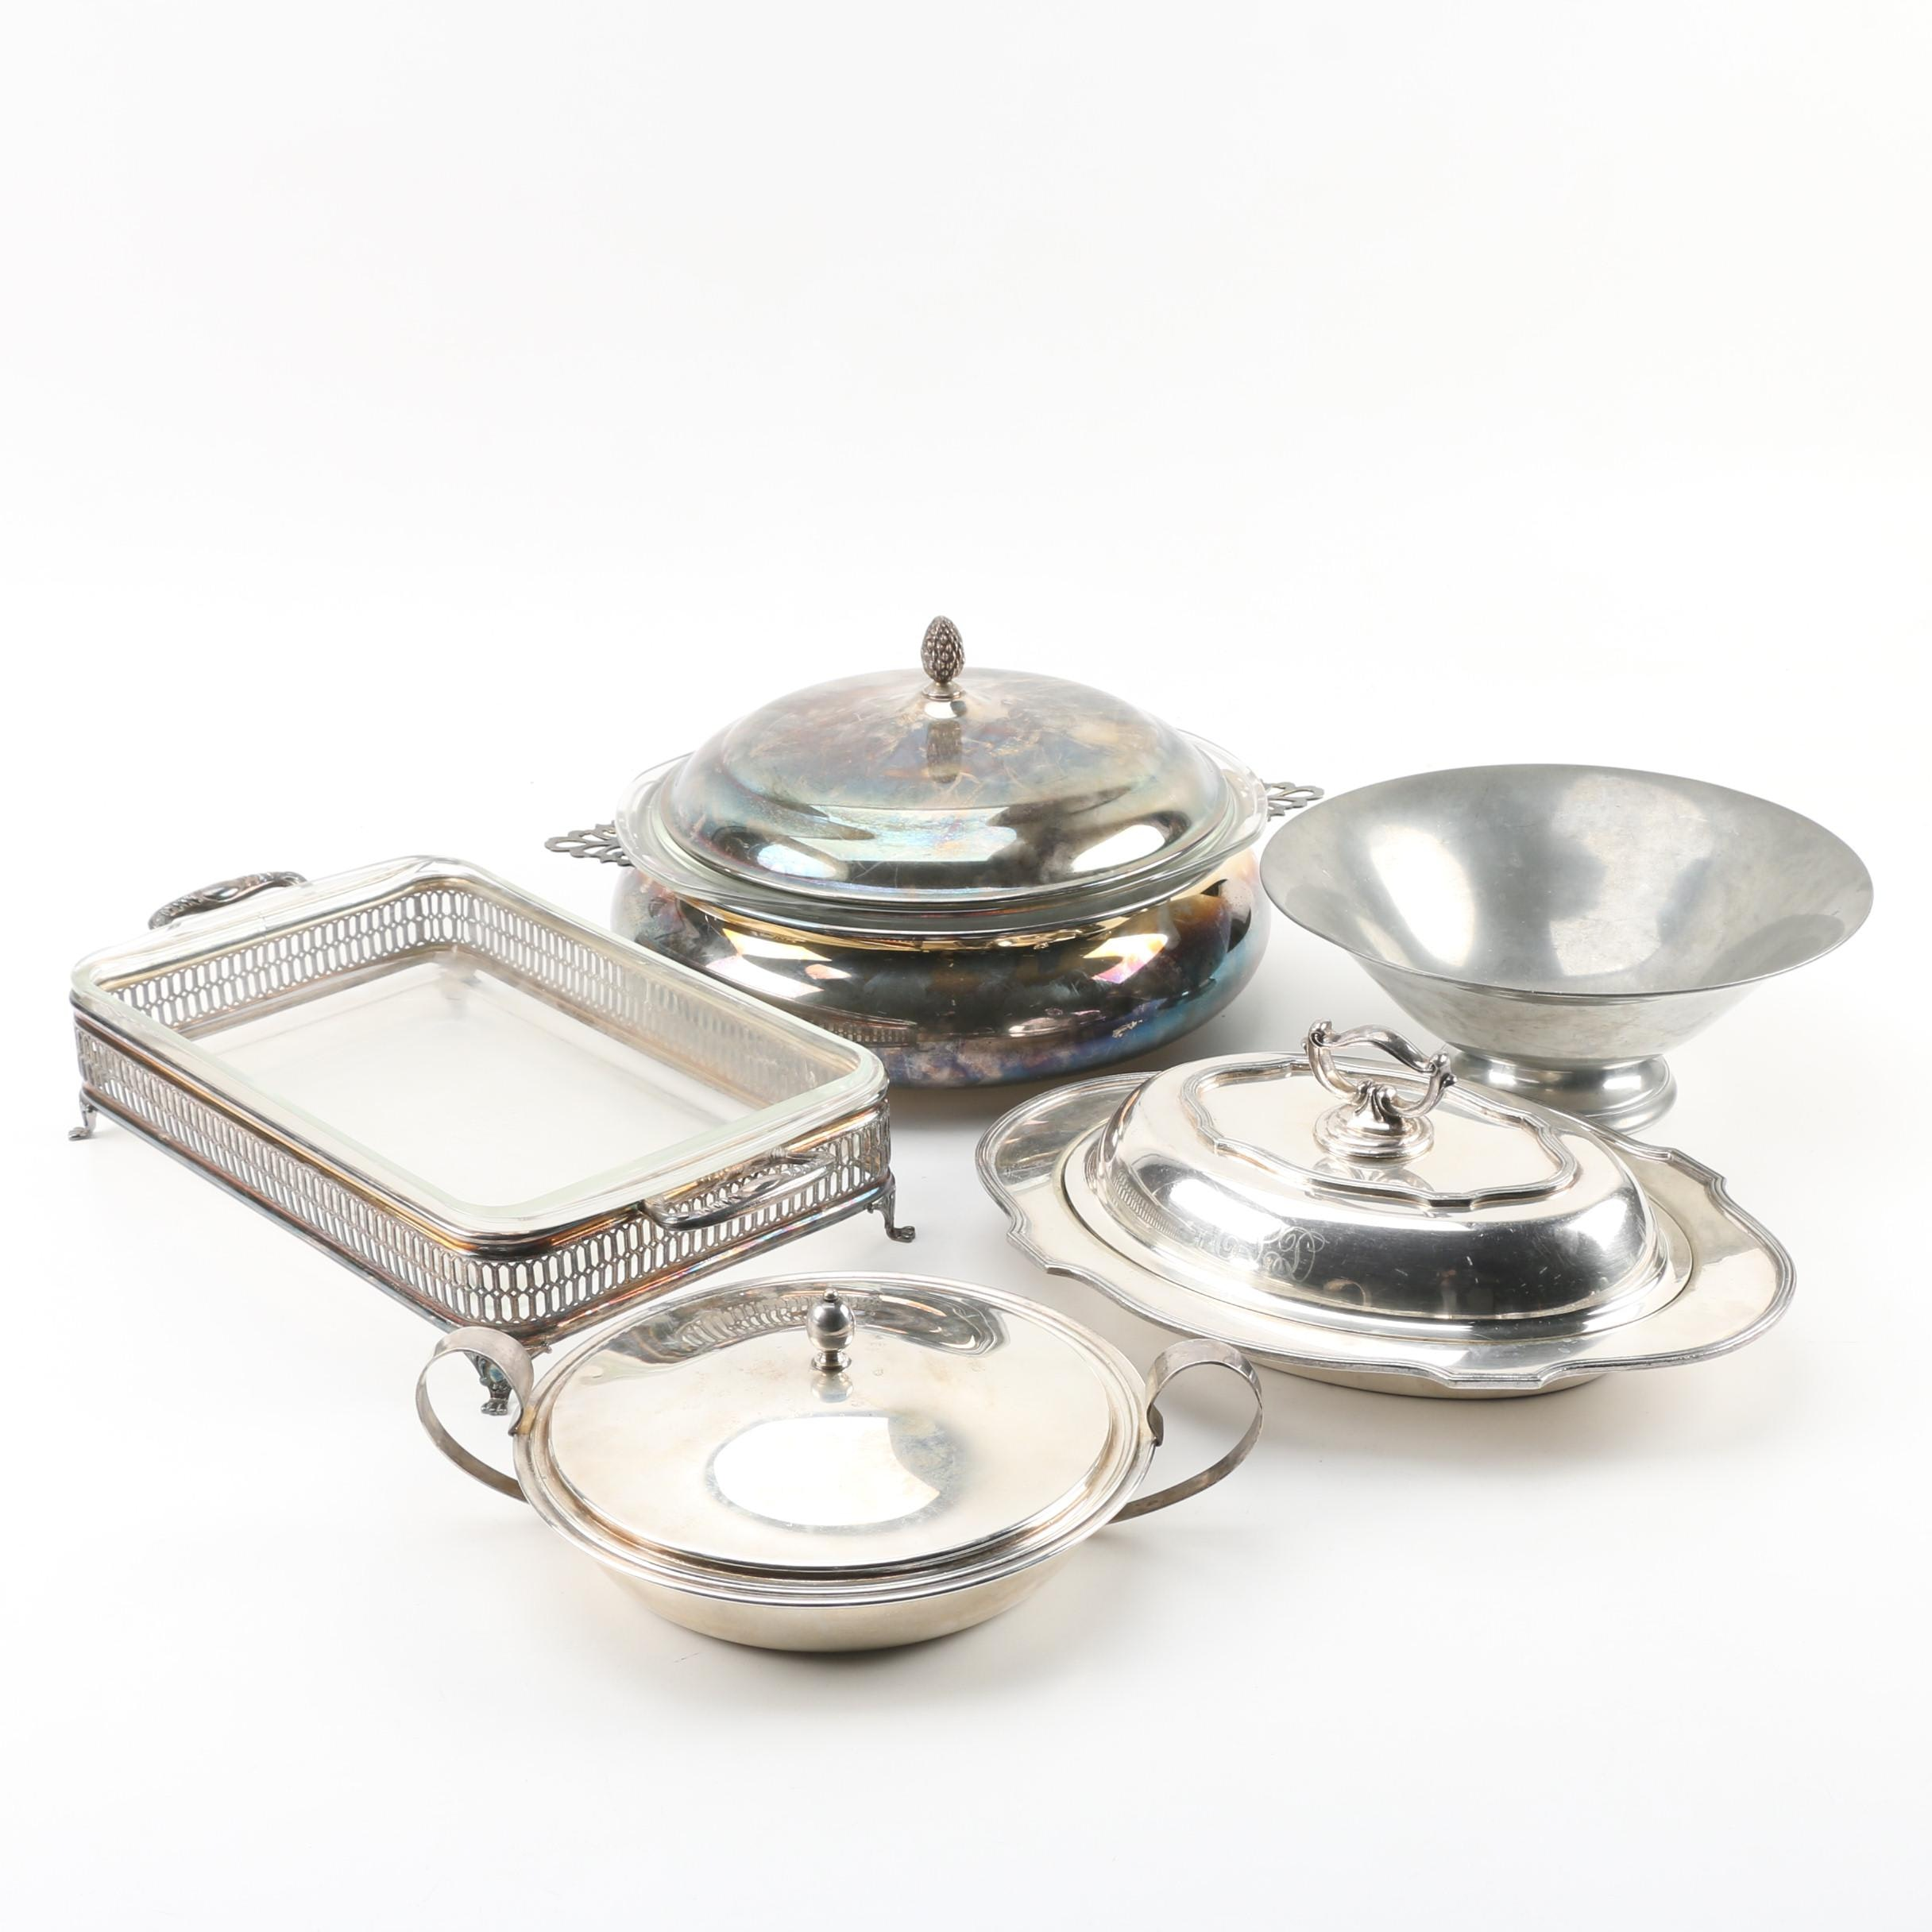 Sheffield Silver Co. Vegetable Dish with Other Silver Plate Serveware and Pewter